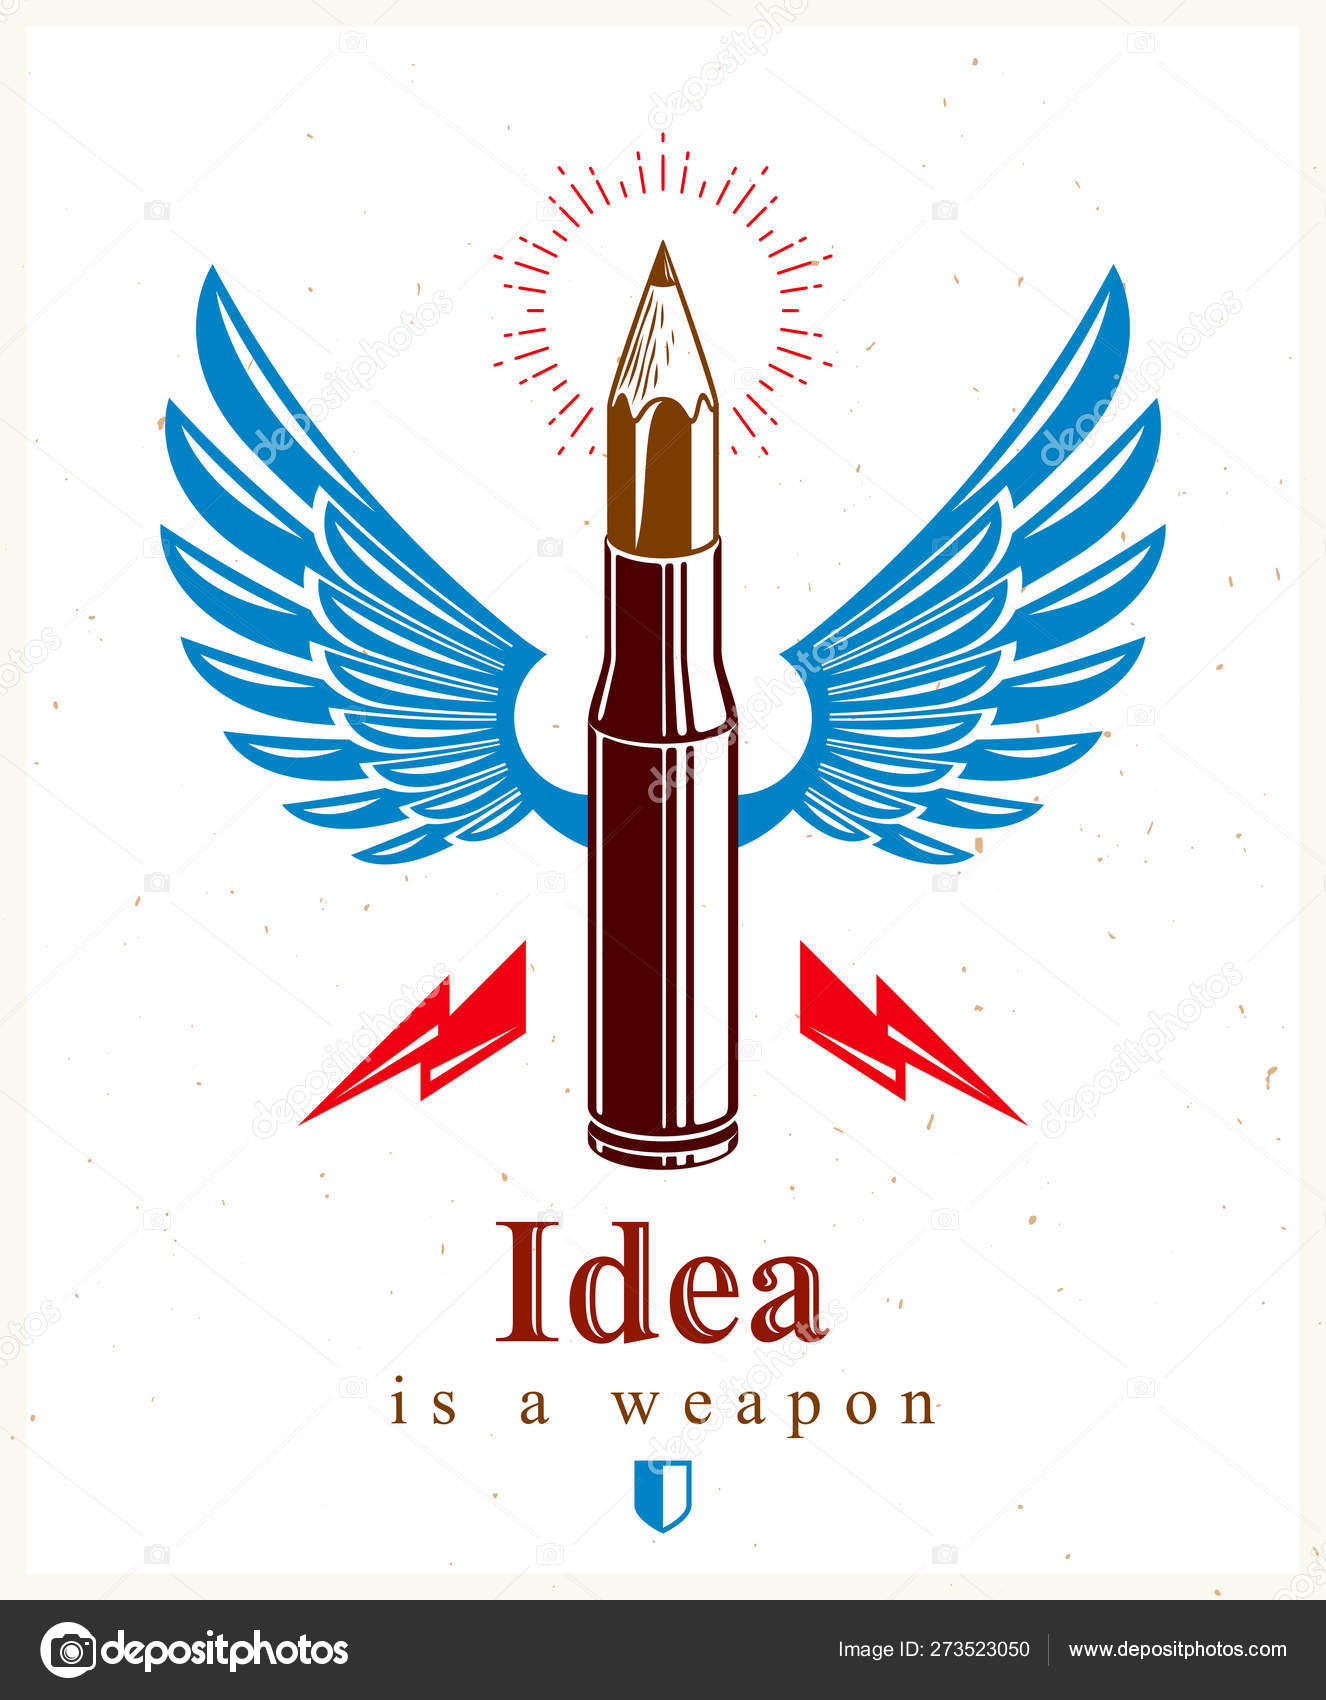 Idea is a weapon concept, weapon of a designer or artist